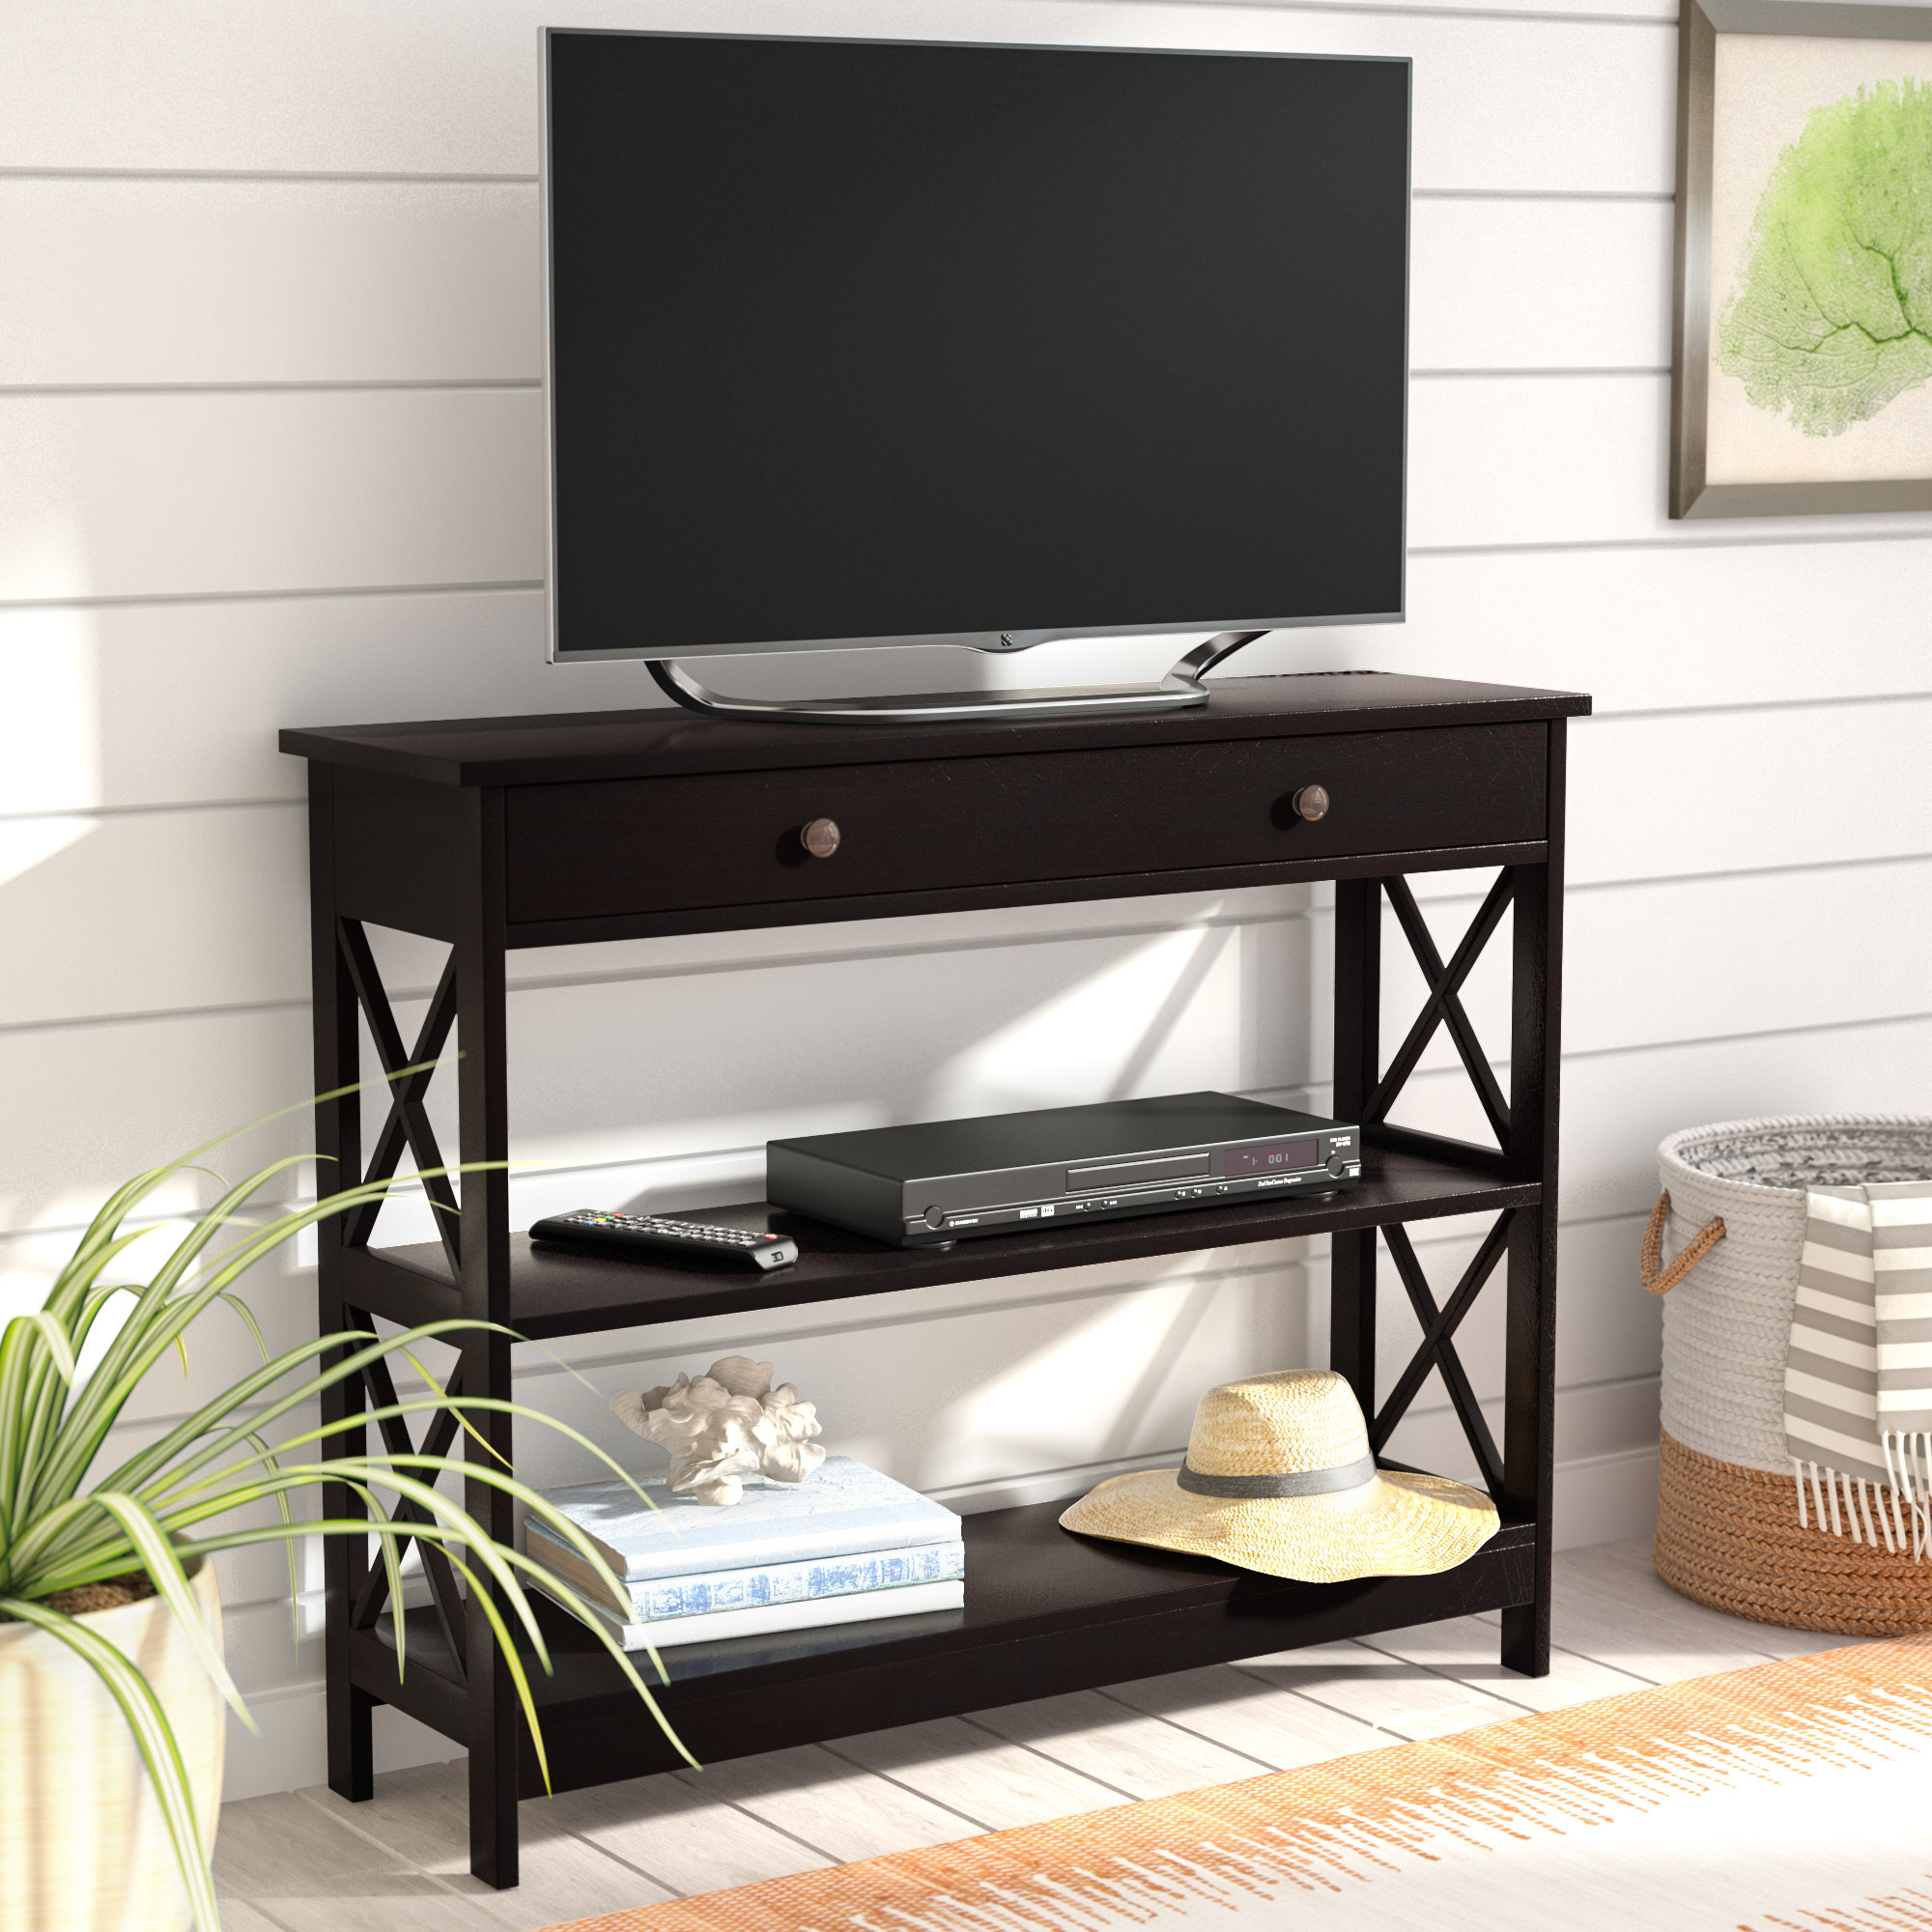 8 Inch Deep Console Table | Wayfair Regarding Oscar 60 Inch Console Tables (Photo 9 of 30)